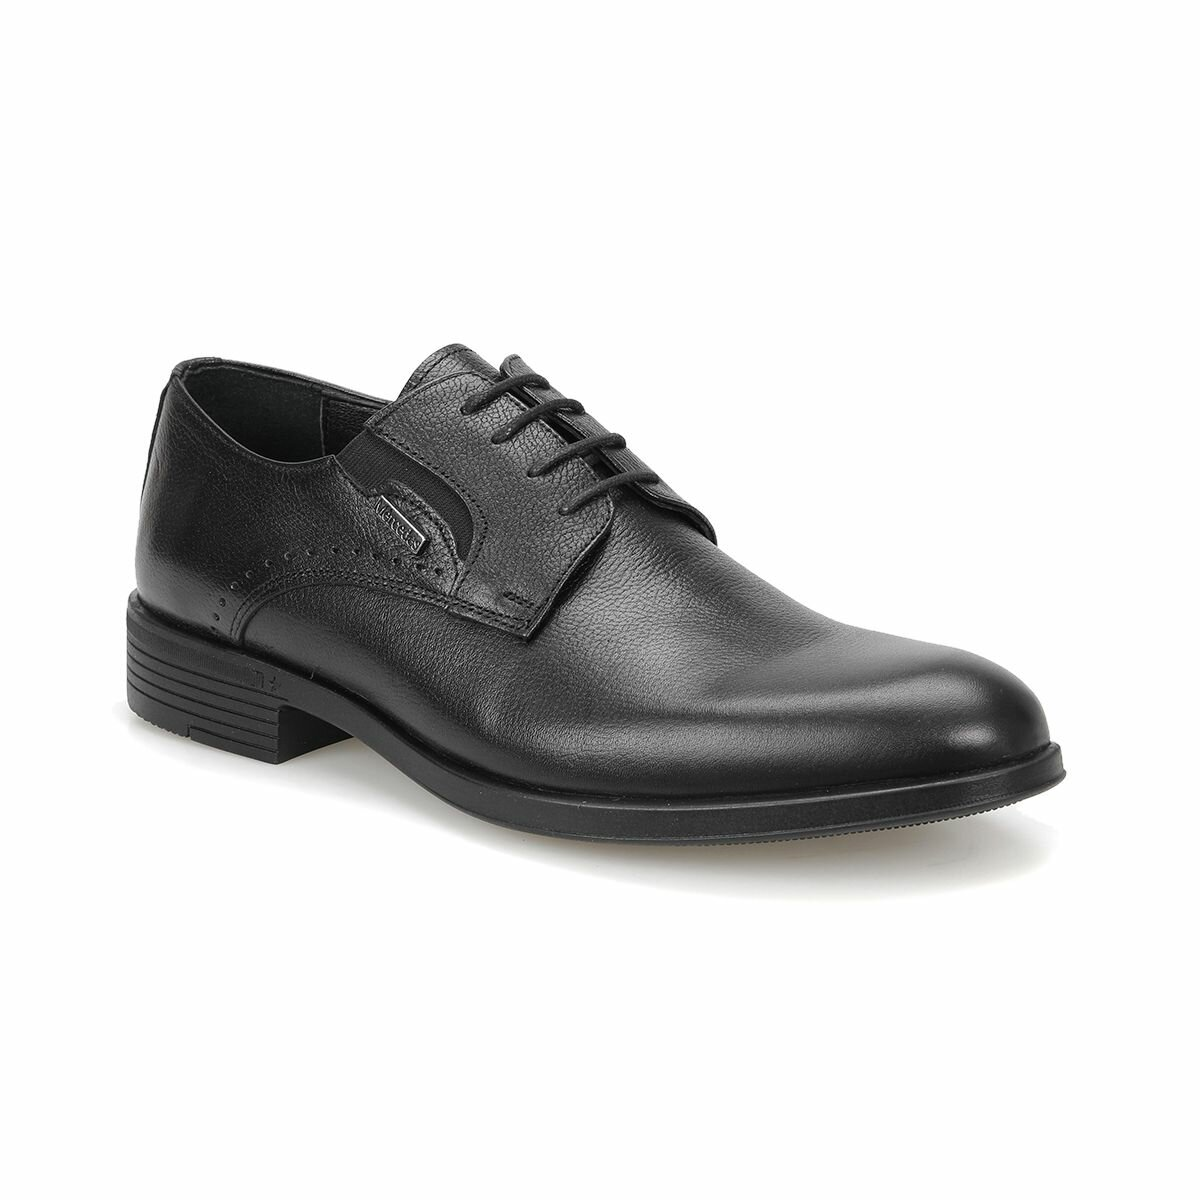 FLO NEREO 9PR Black Men 'S Classic Shoes MERCEDES